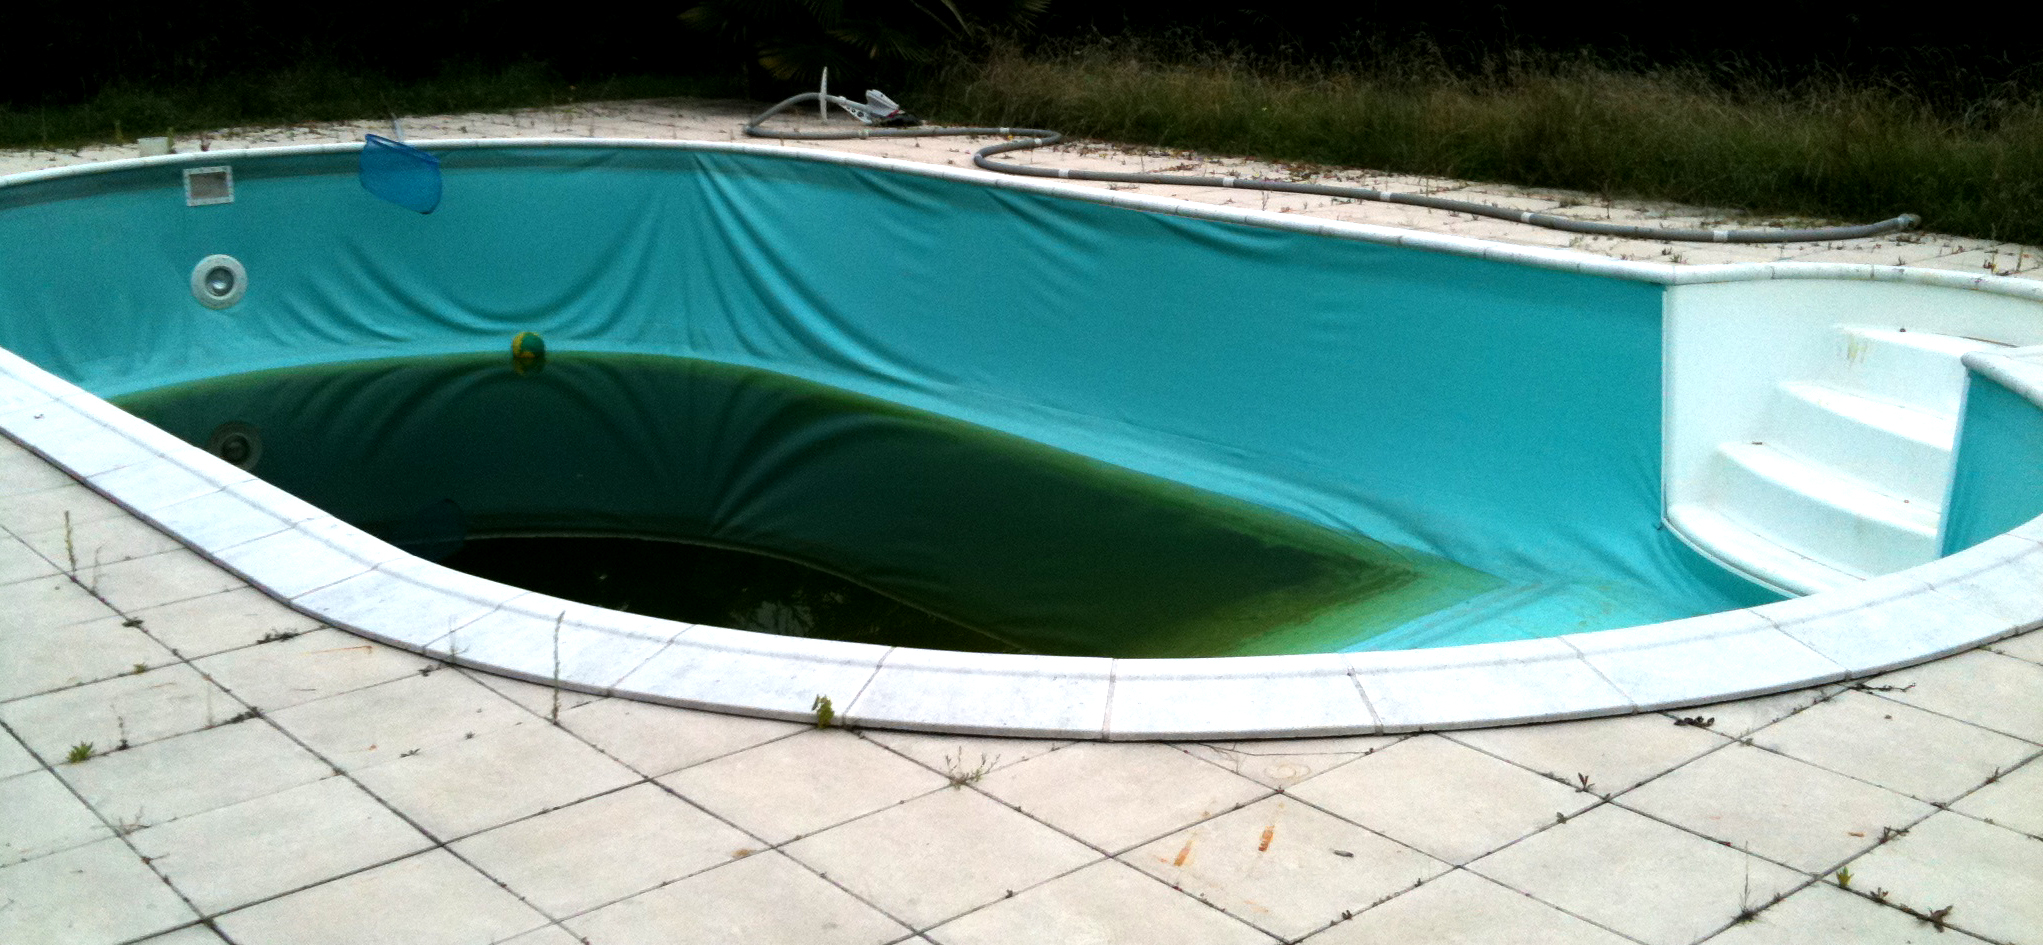 R novation d une piscine waterair for Prix changement liner waterair